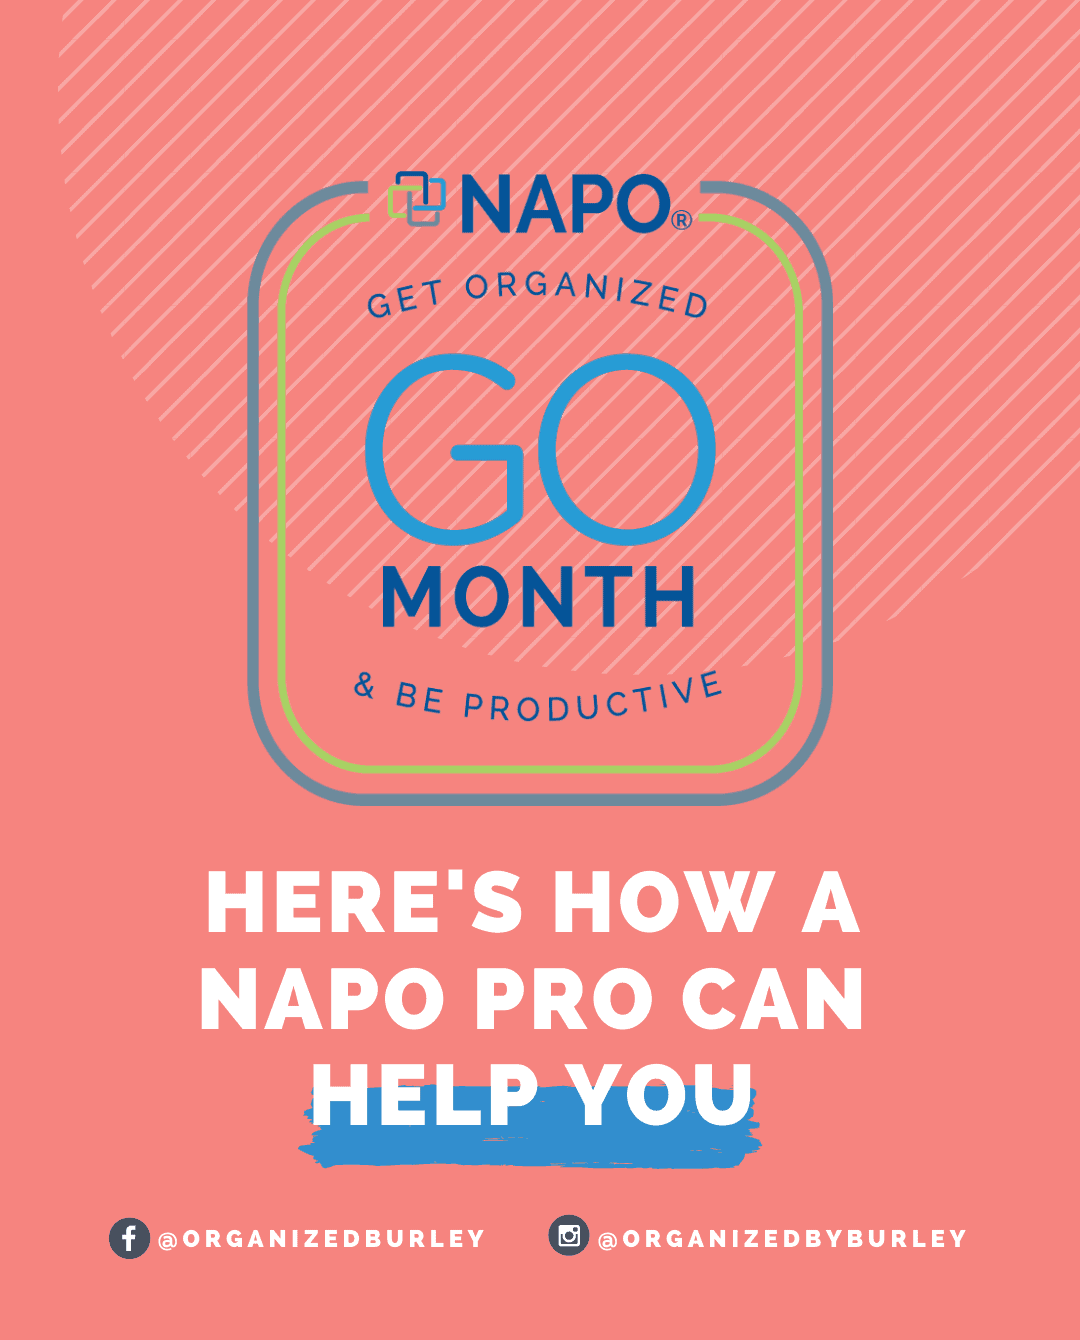 Here's How A NAPO Pro Can Help You